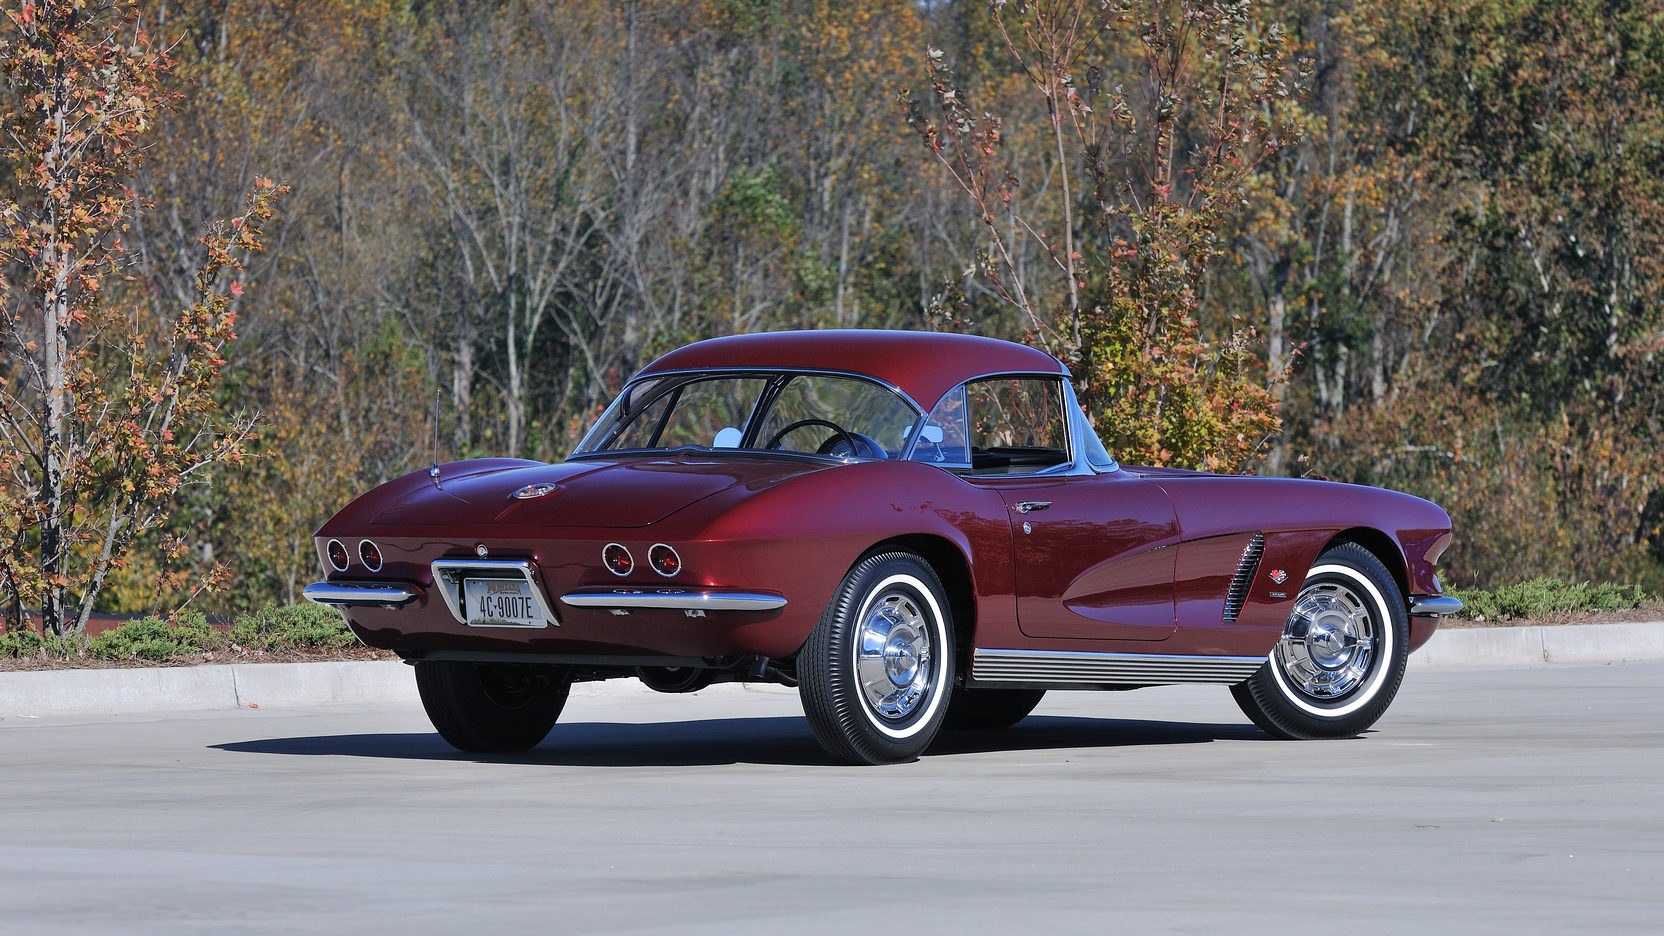 1962 Chevrolet Corvette rear 3/4